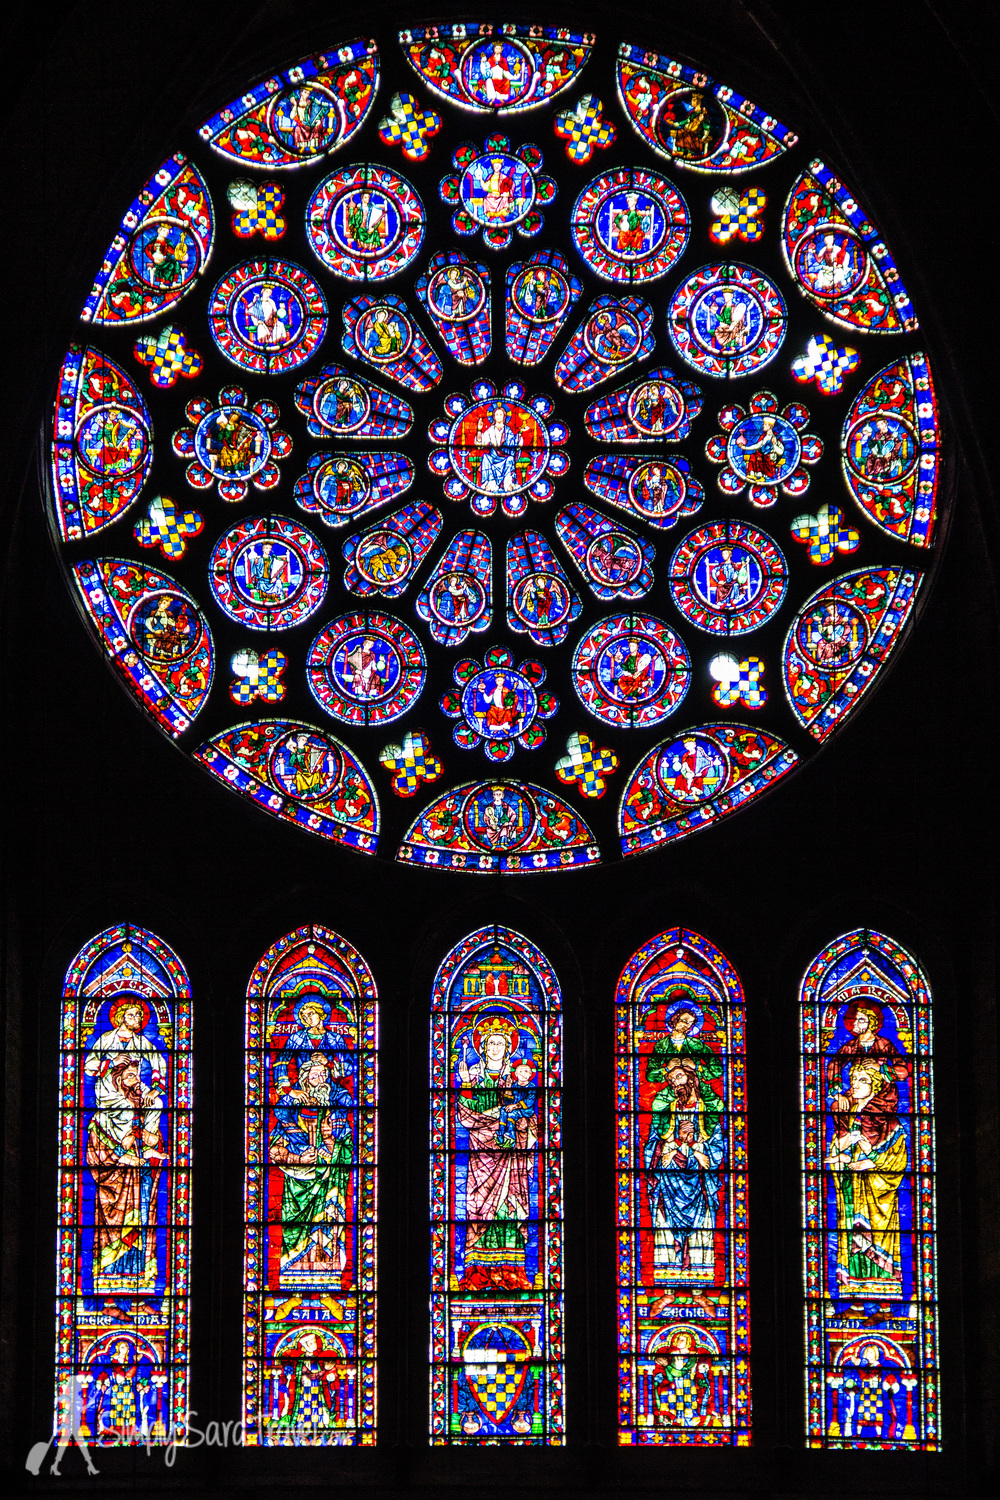 The South Rose Window, dating from about 1225. Check out the bottom row - on either side of Mary holding the infant Jesus are four Old Testament prophets giving piggy-back rides to the four New Testament evangelists.